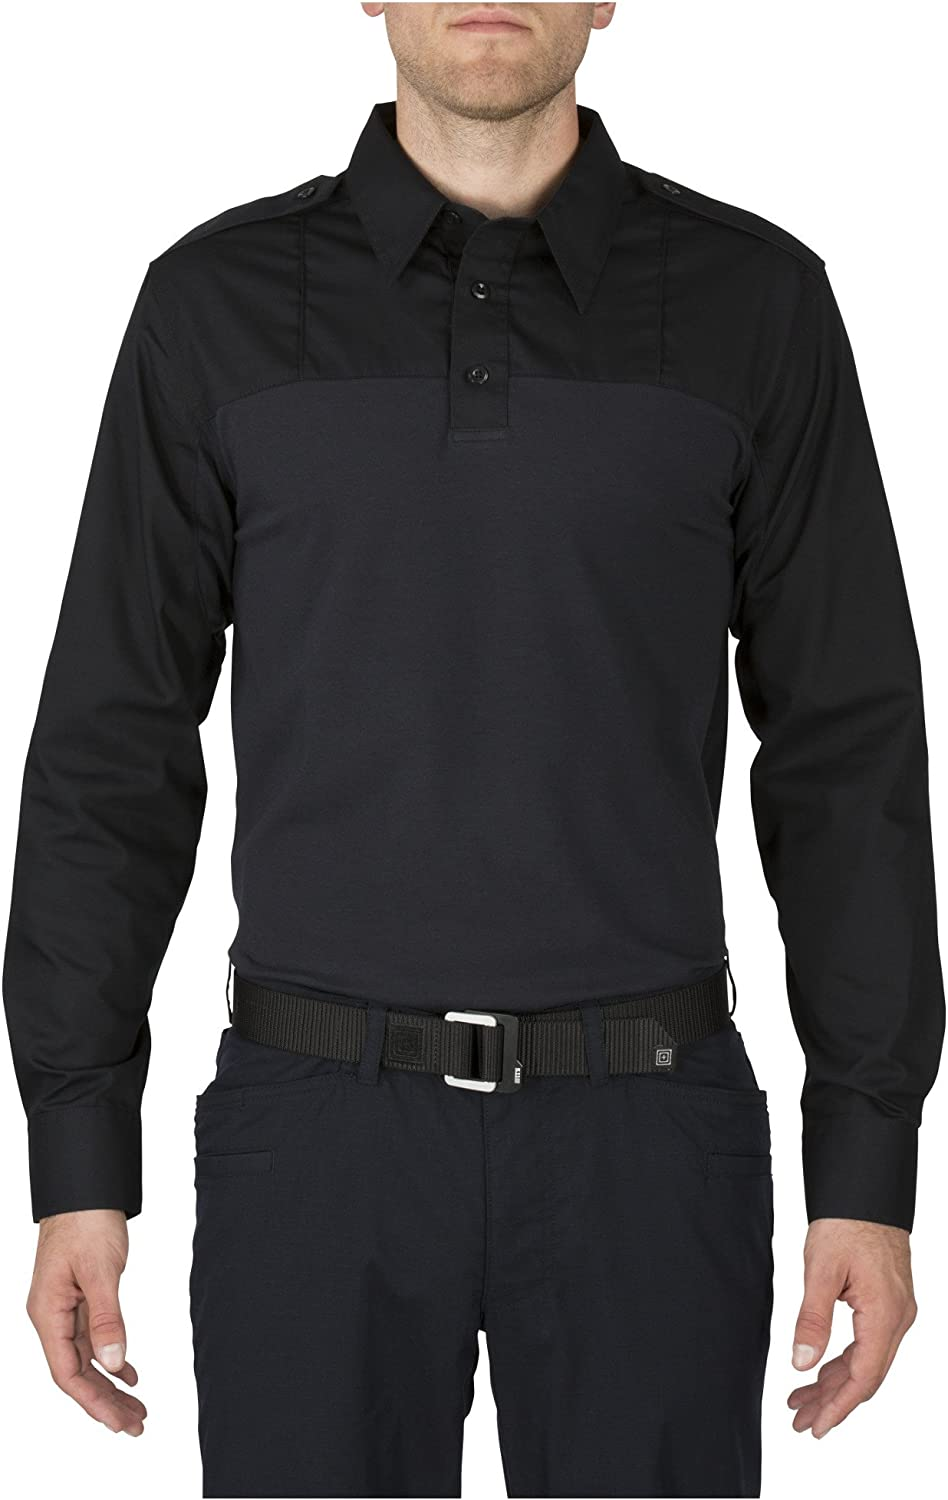 5.11 Tactical Men's Taclite PDU Rapid LongSleeve Work Polo Shirt, PolyCotton Dual Fabric, Style 72093